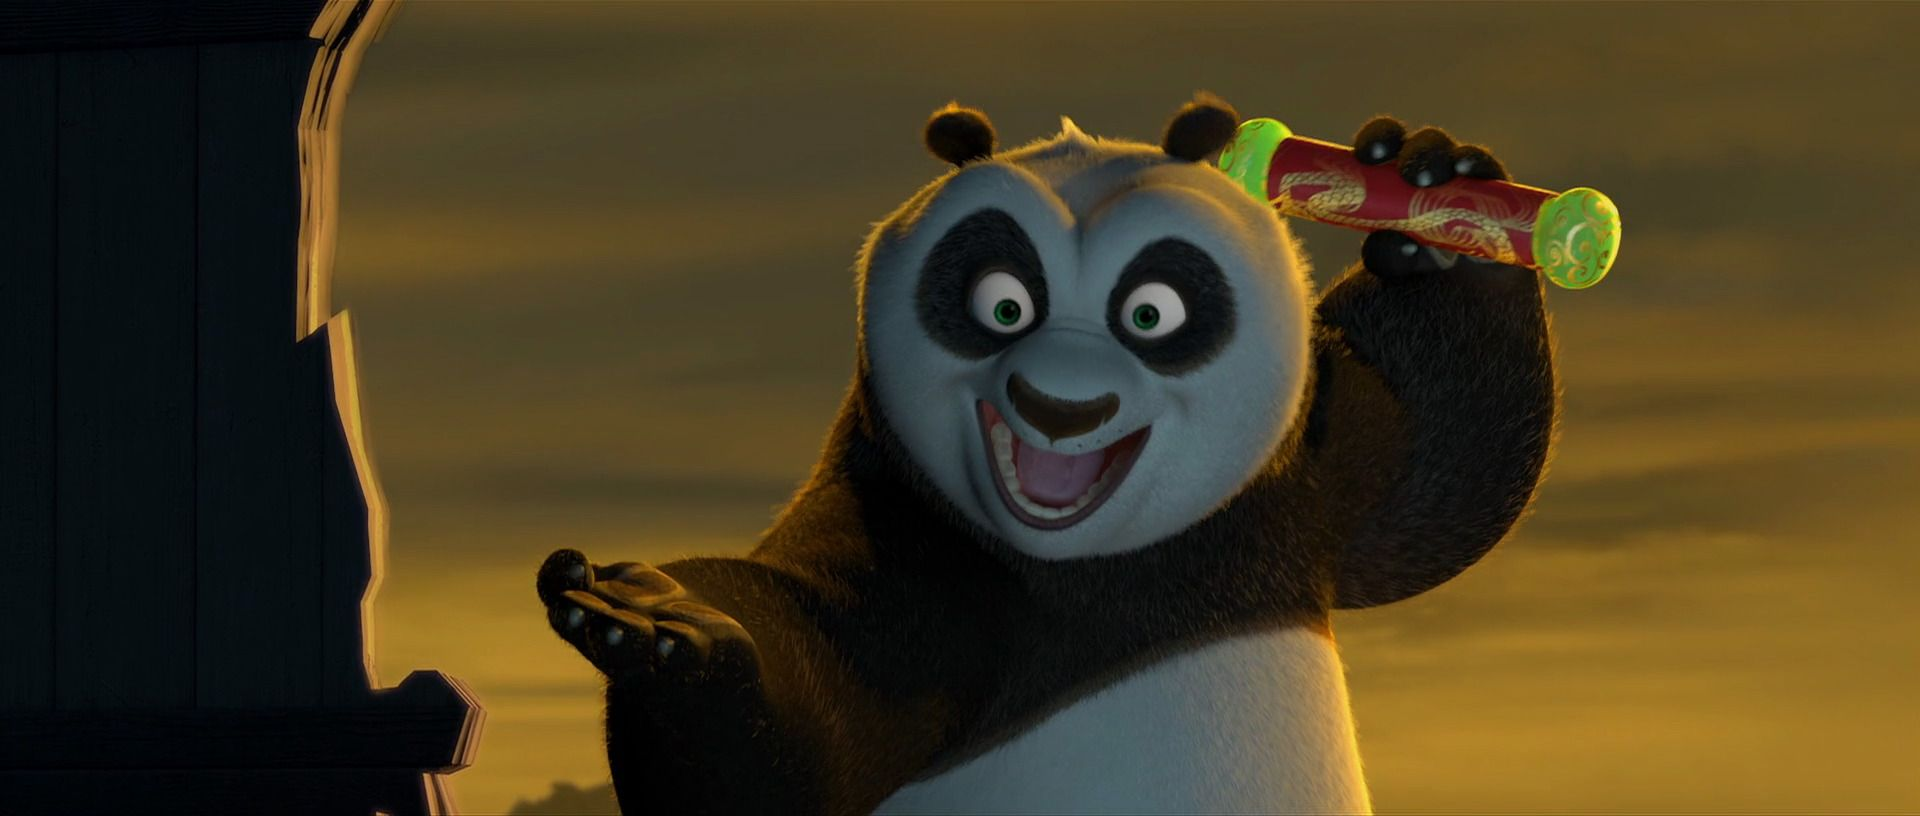 screencap gallery for kung fu panda (2008) (1080p bluray, dreamworks